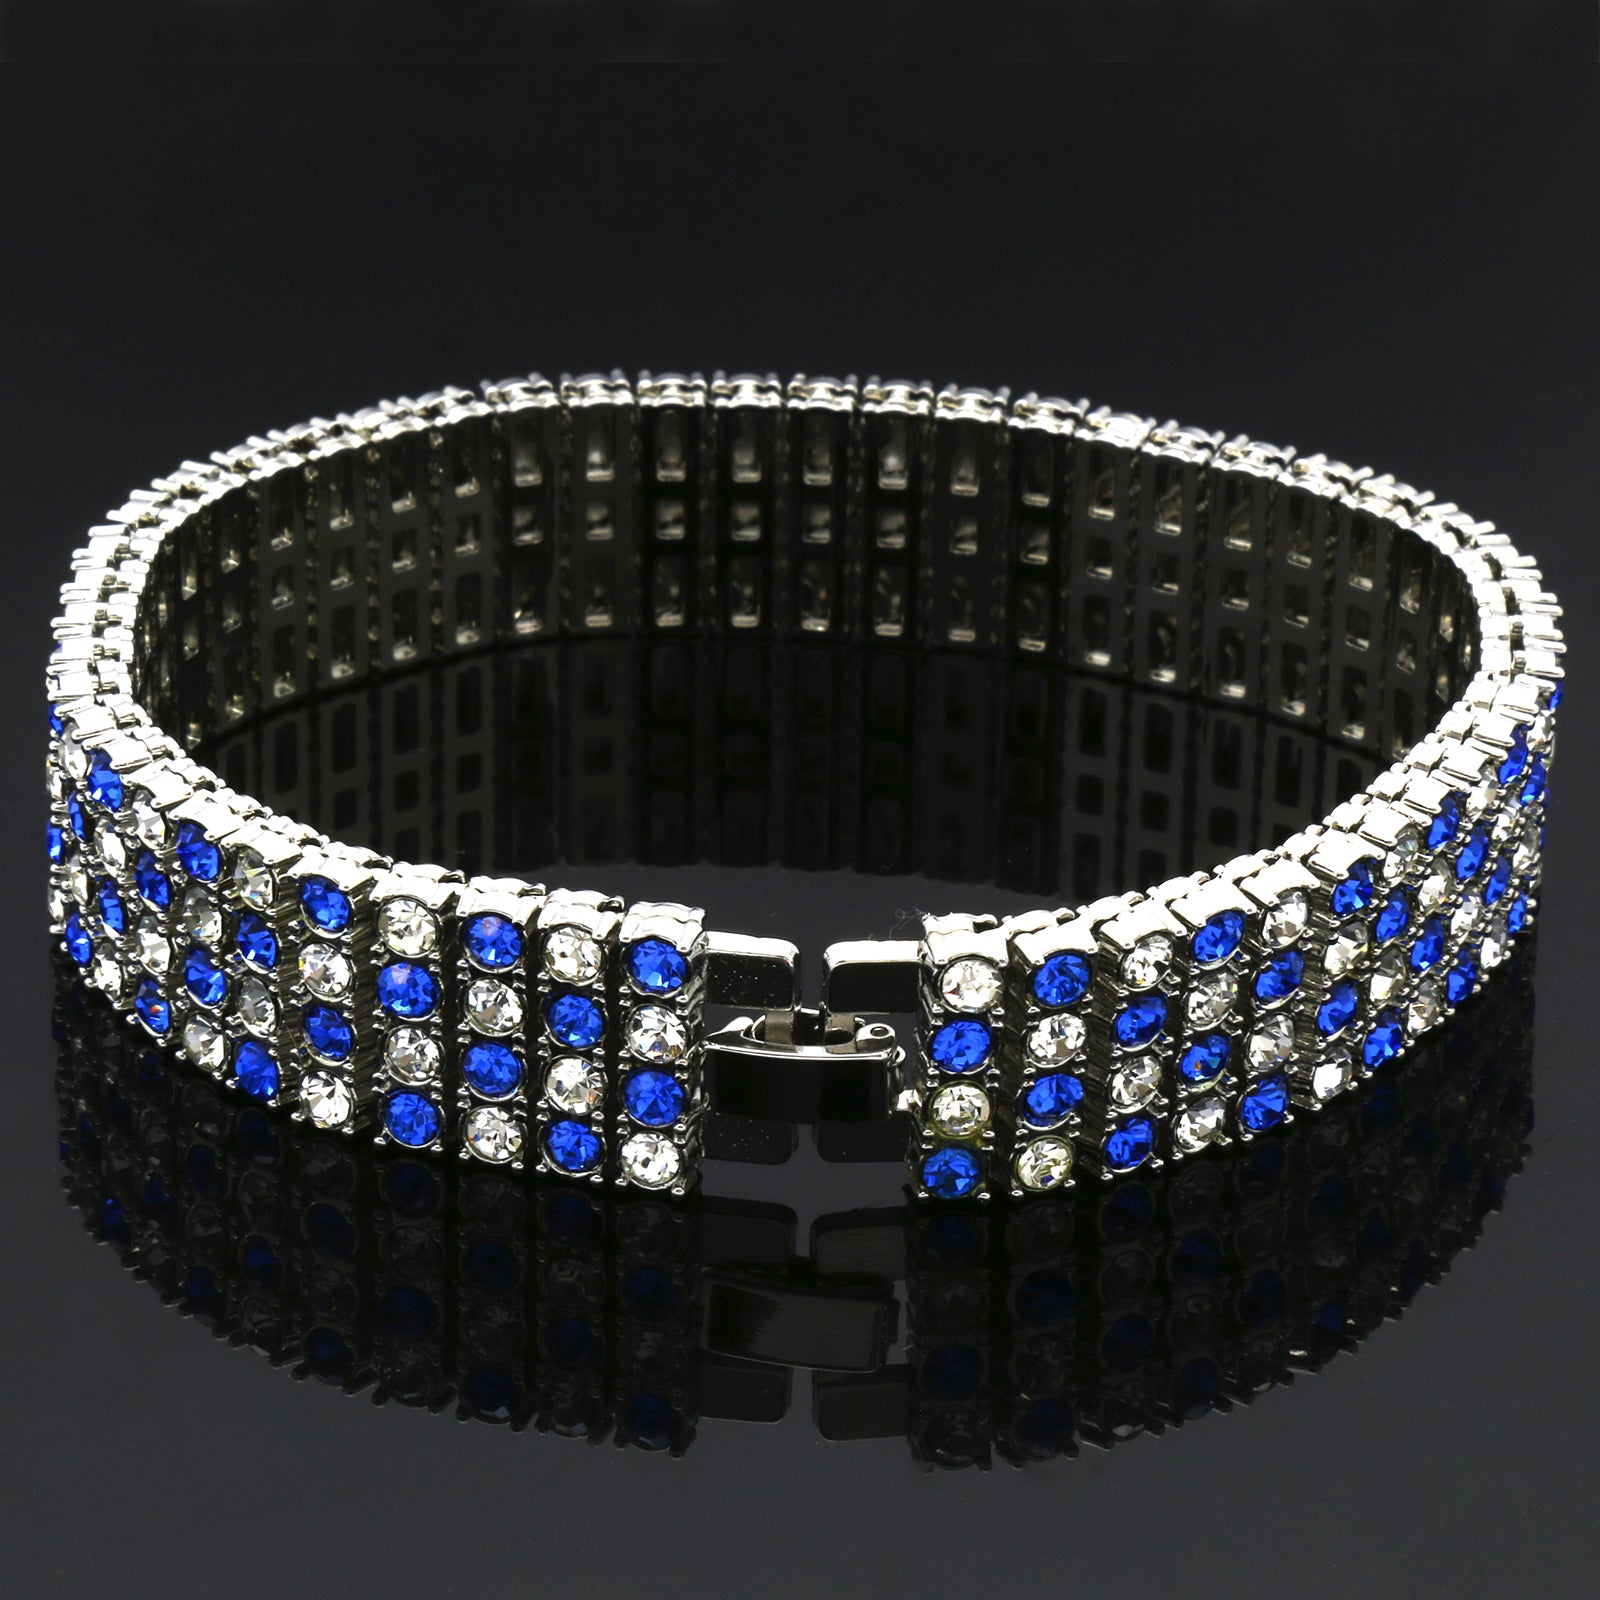 TENNIS BRACELET 4 LINE CLEAR/BLUE